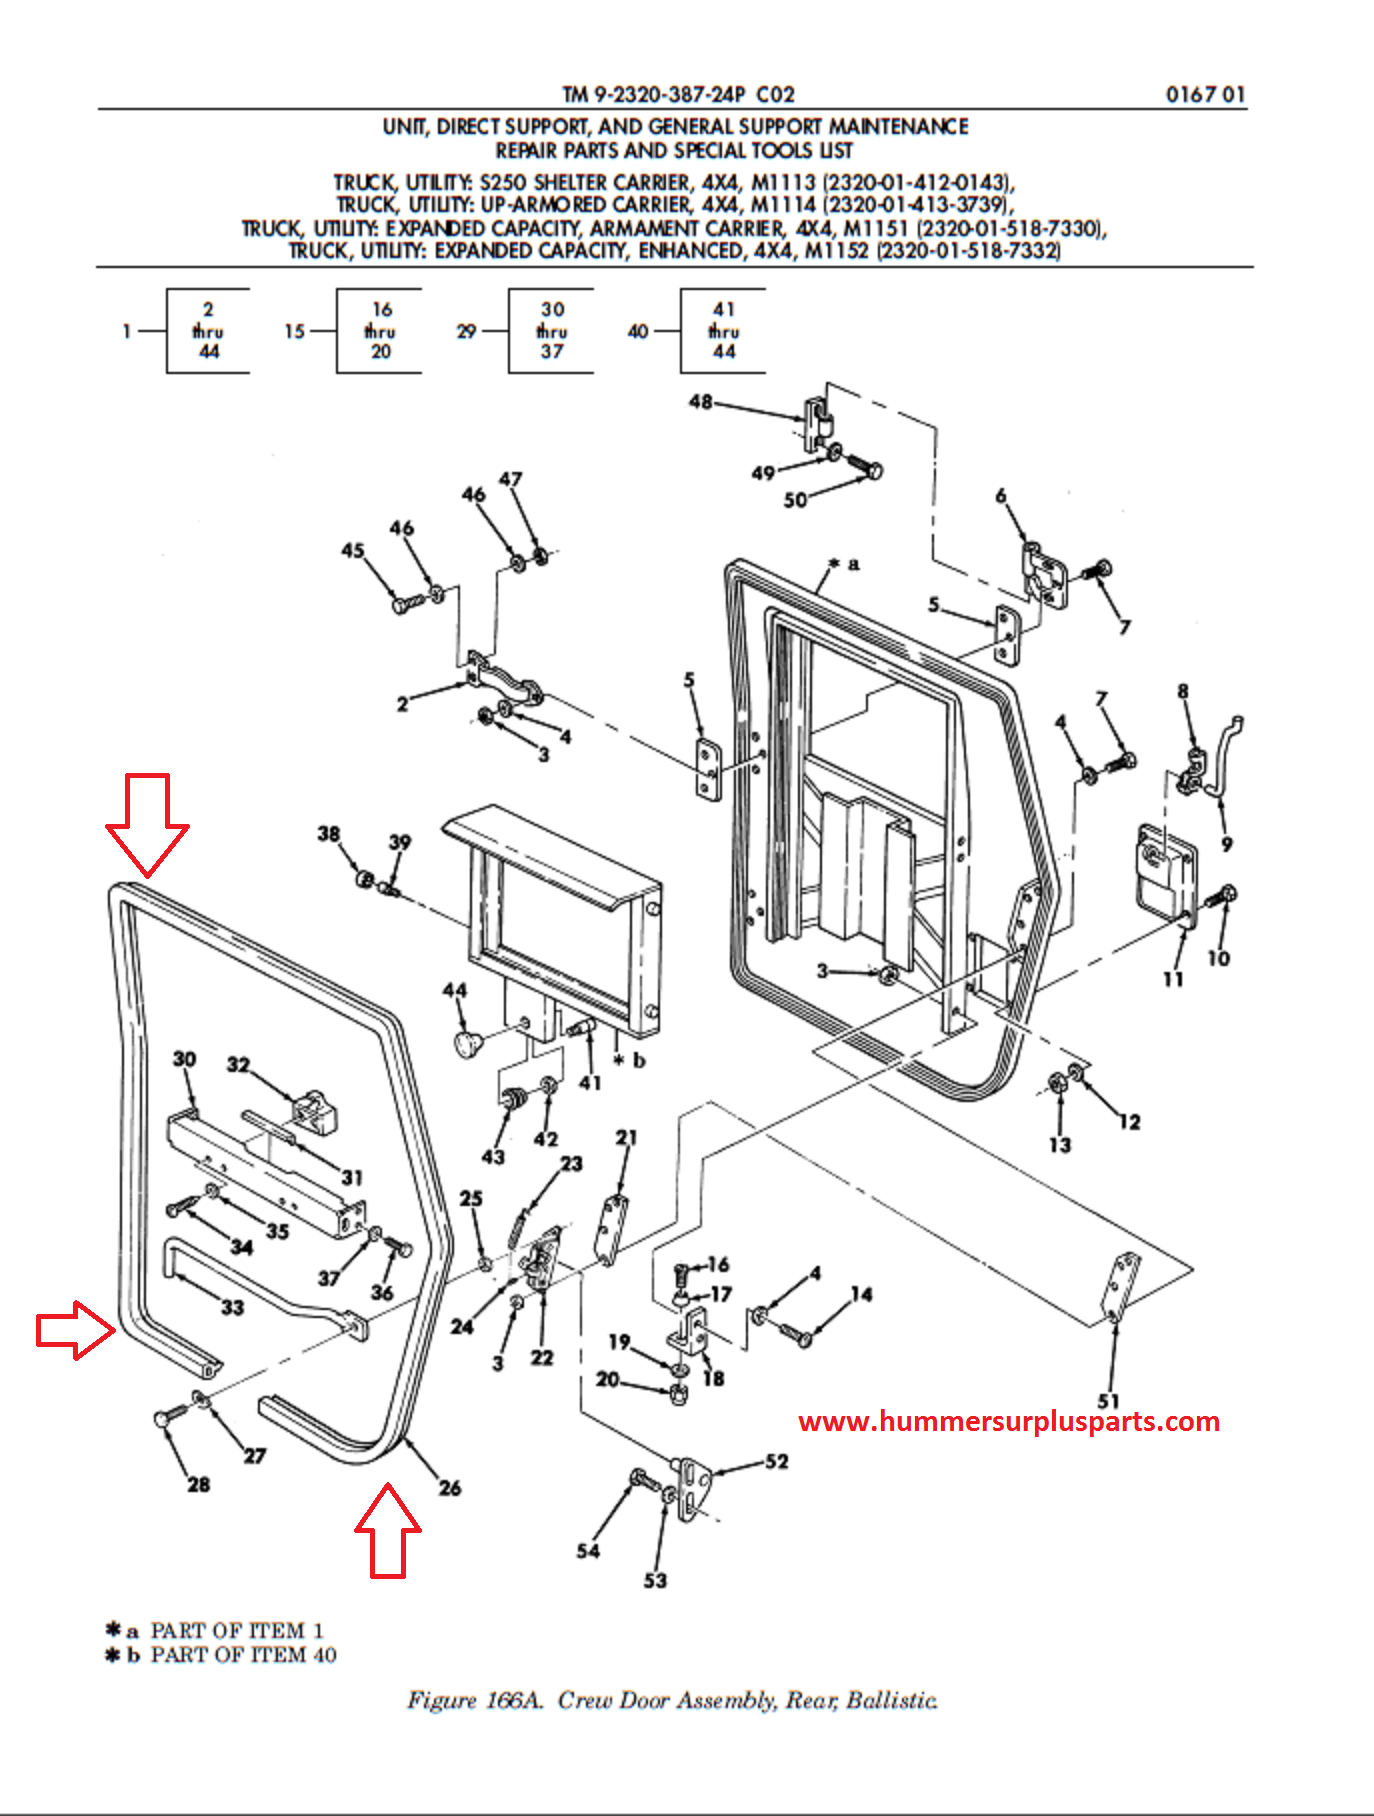 6f44c5bedb1a42d9 likewise Cabi   ponents also Door Lock Relay Wiring Diagram besides Diagram Of Dutch Door Plans Type And Design With Double Top Plates And Double King Stud additionally Innovative Octopus Paint Rack. on door parts diagram